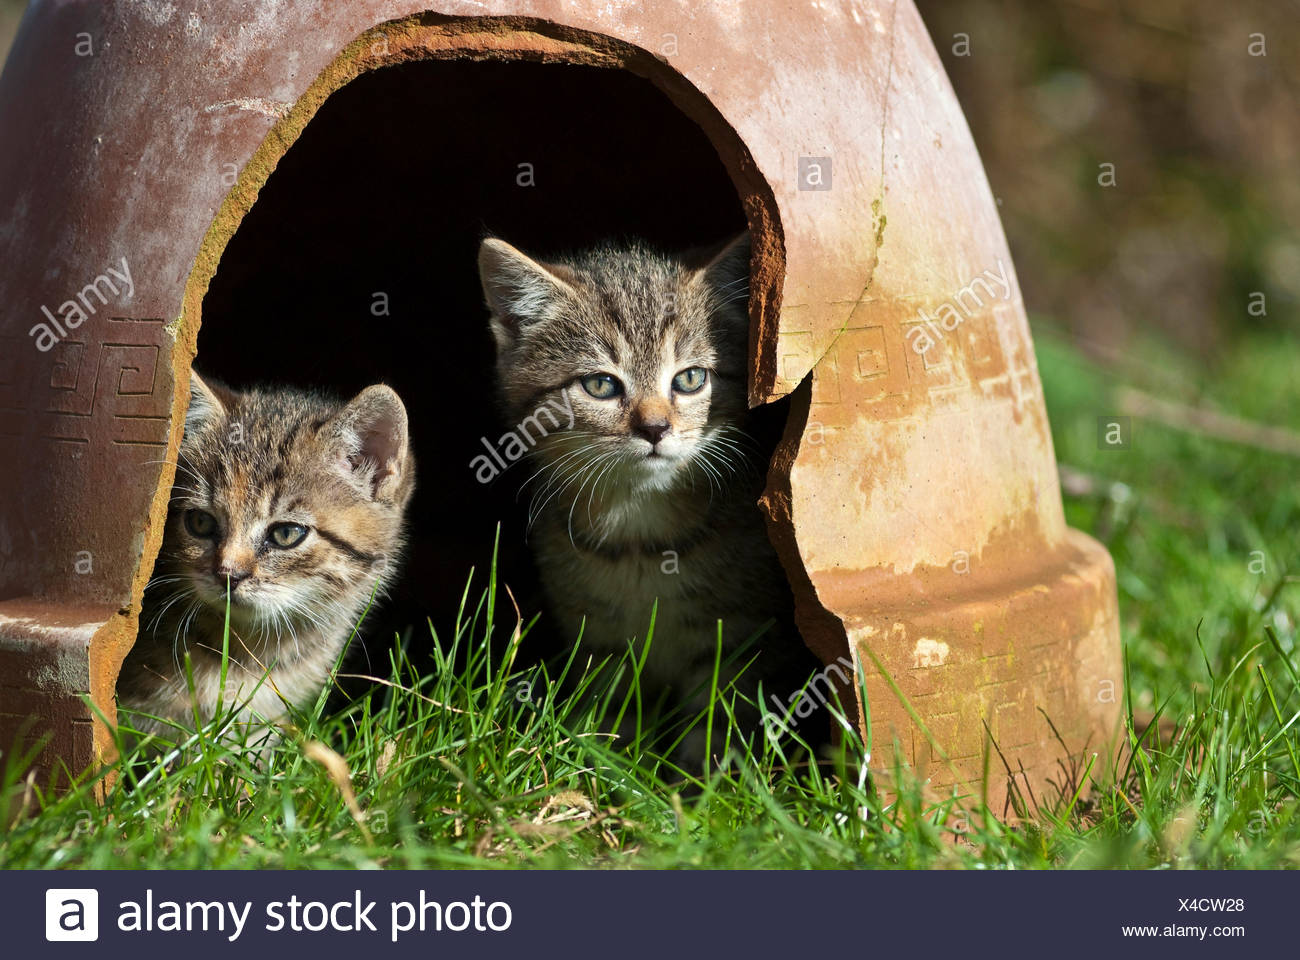 how to get a cat out from under the house